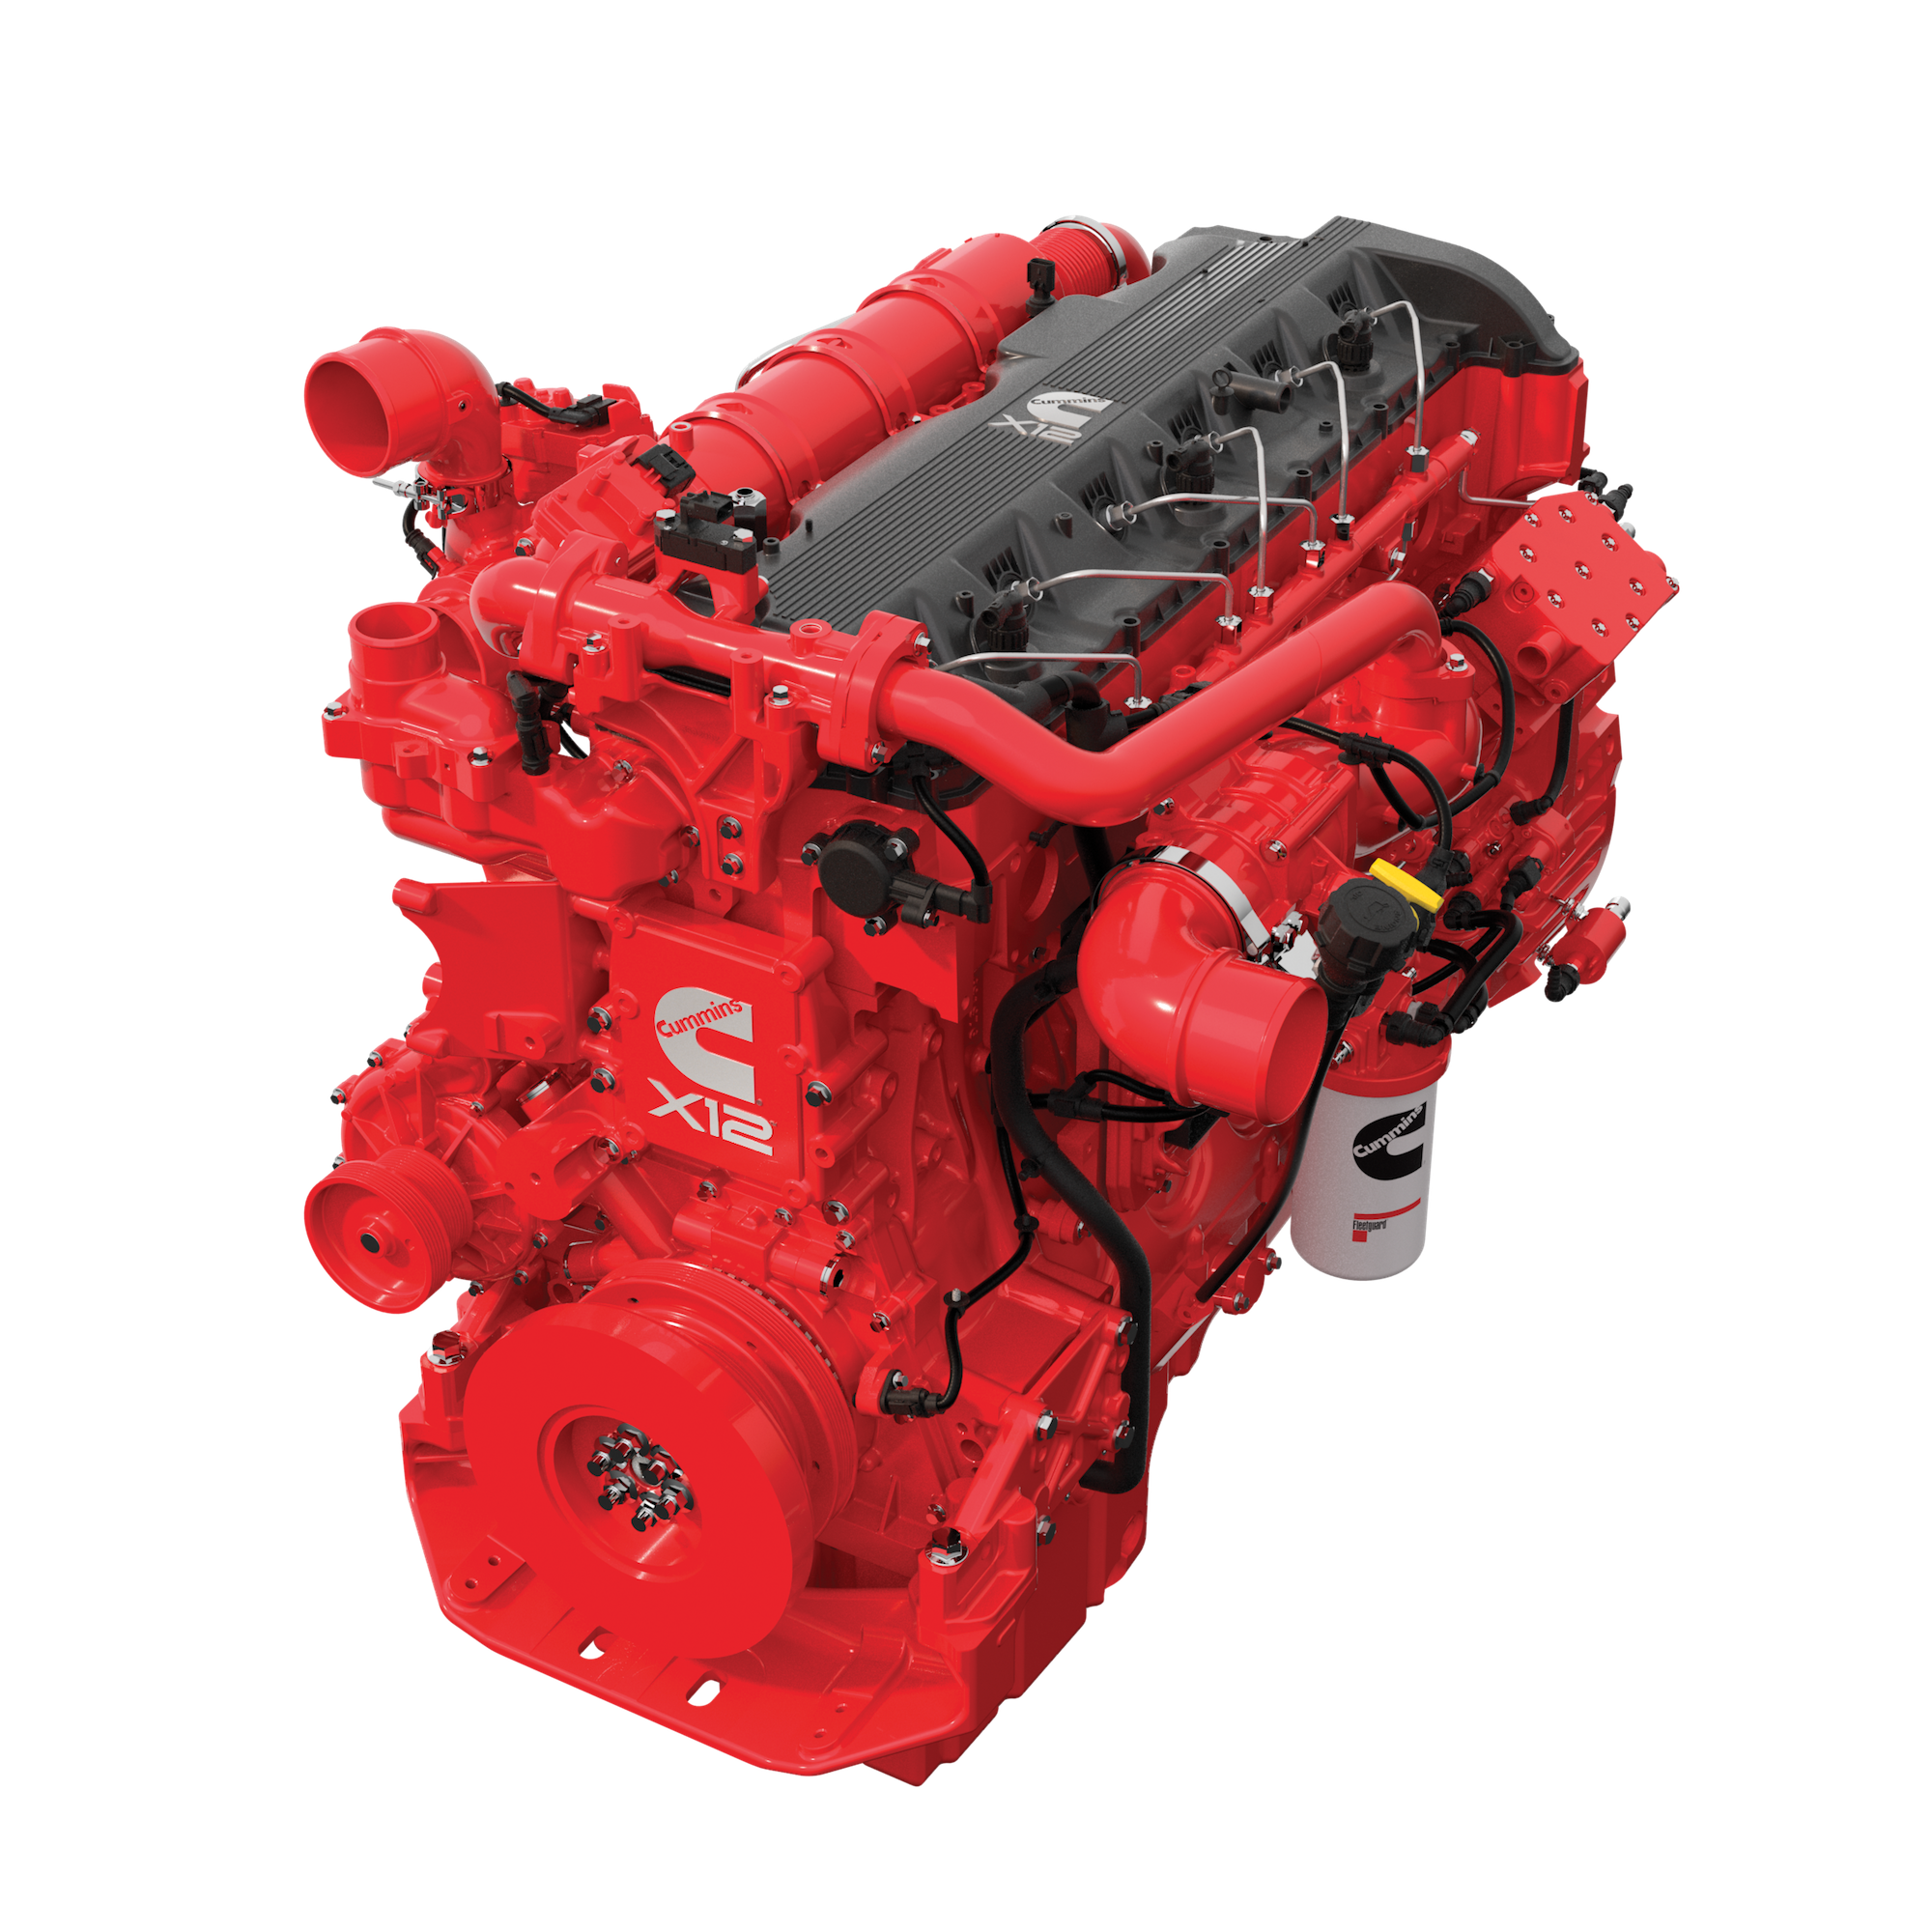 Cummins unveils X12 X15 engines for 2017 rebrands heavy duty lineup